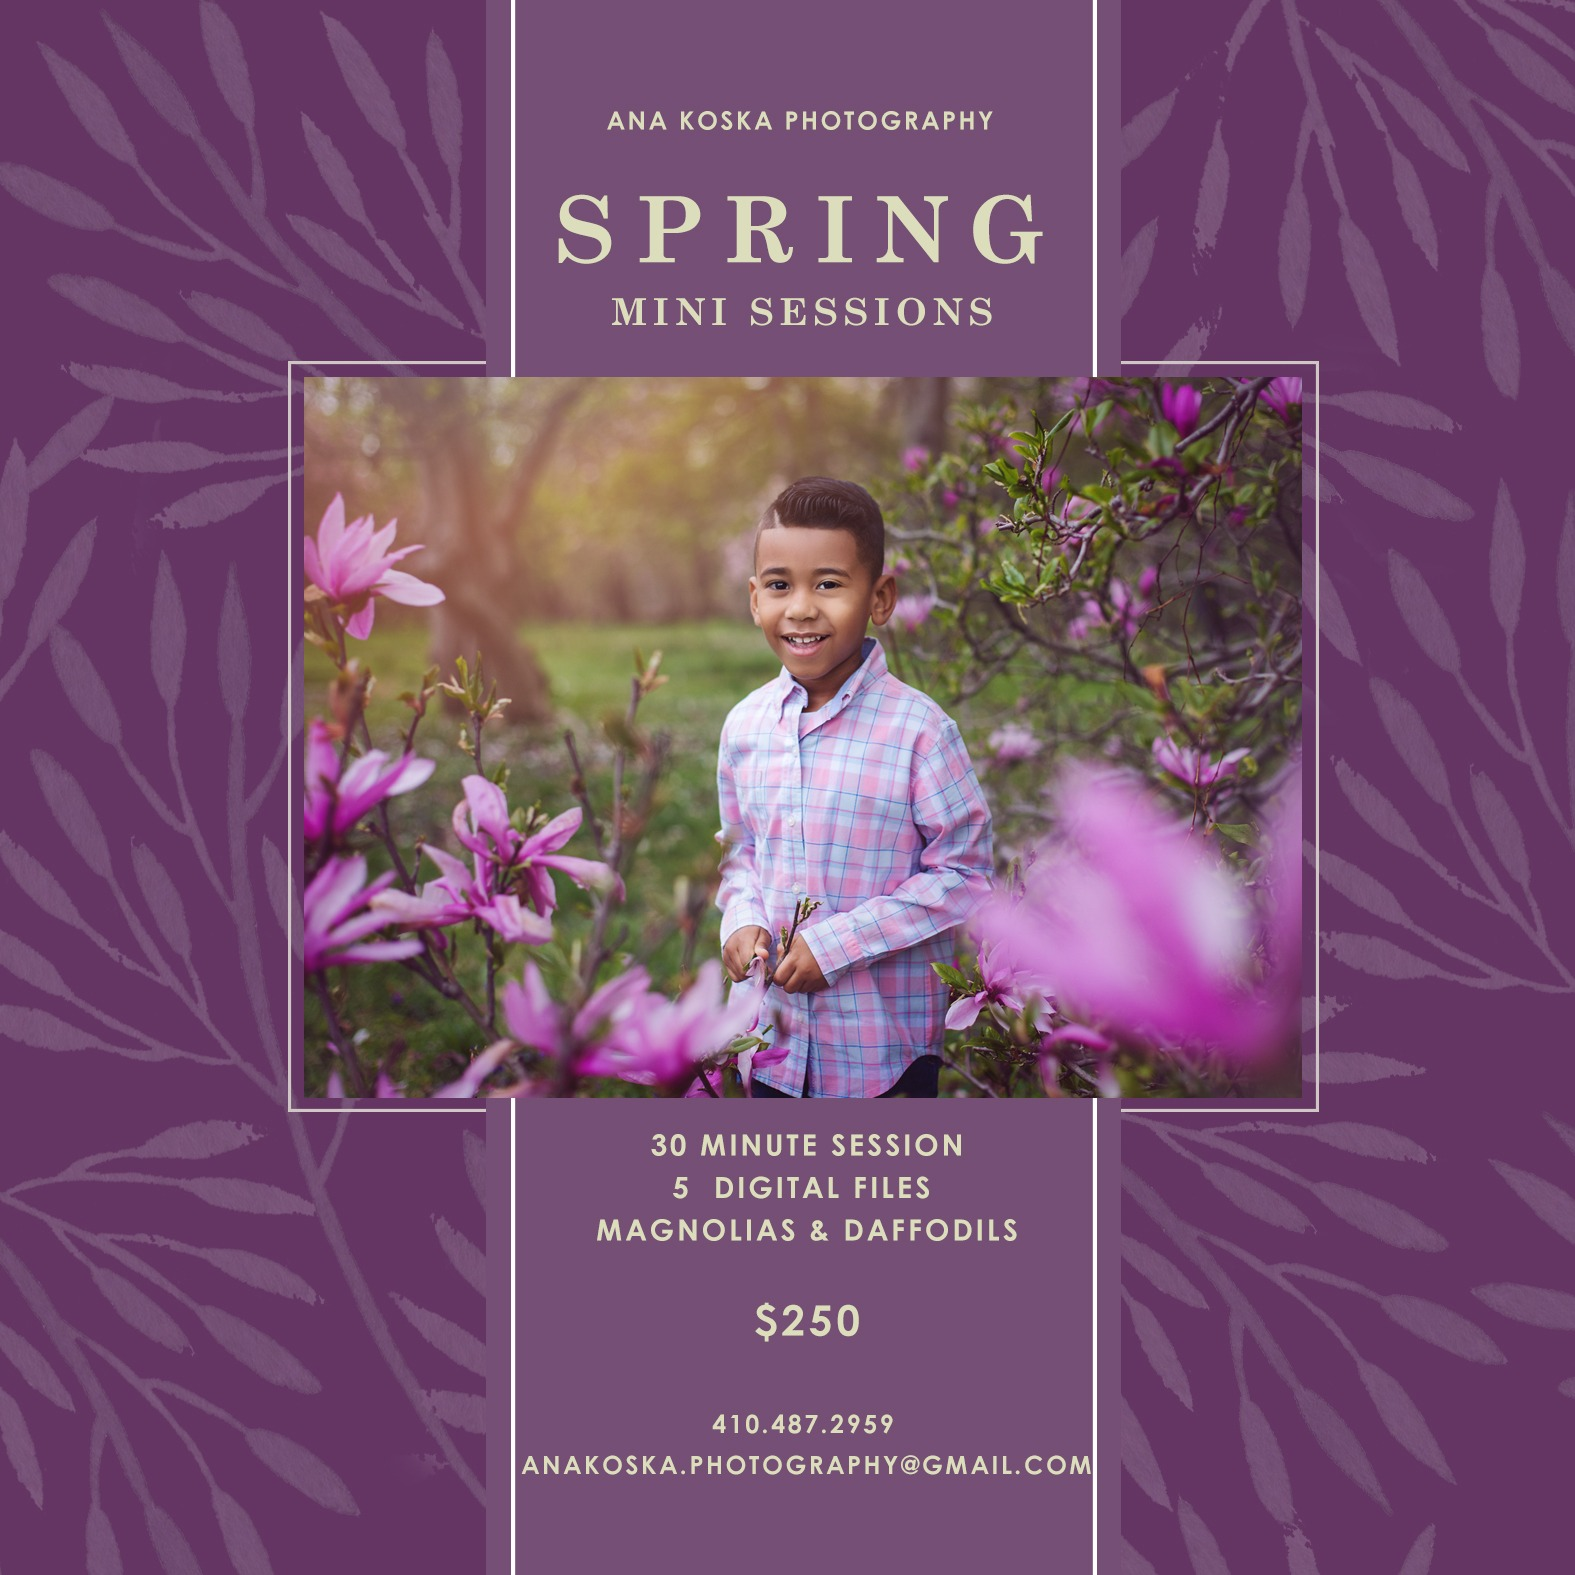 Spring 2019 Mini Sessions Offer